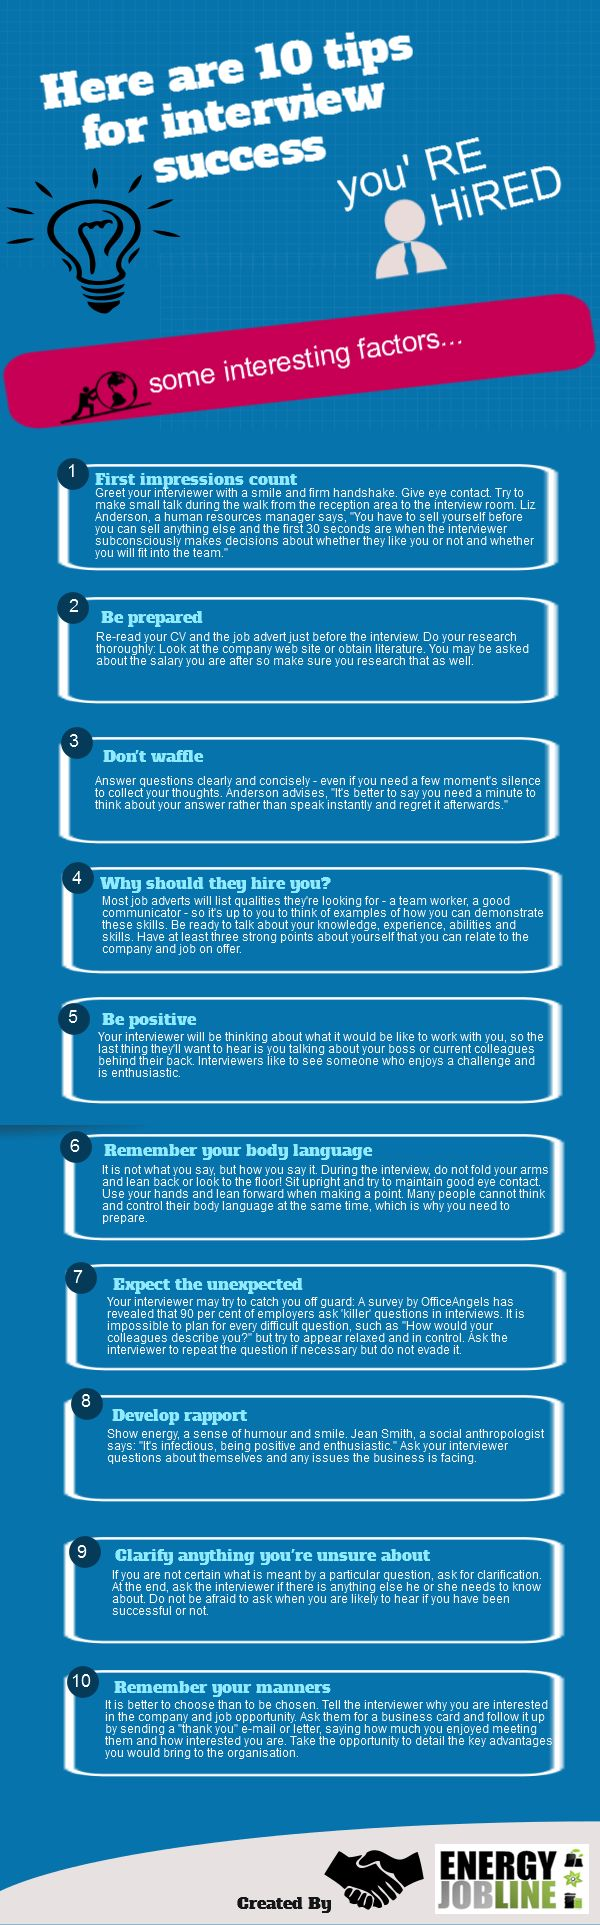 Great tips! And I just love a good infographic... www.Career-Dragon.com Career Advice and Job Tips - PiR Resourcing